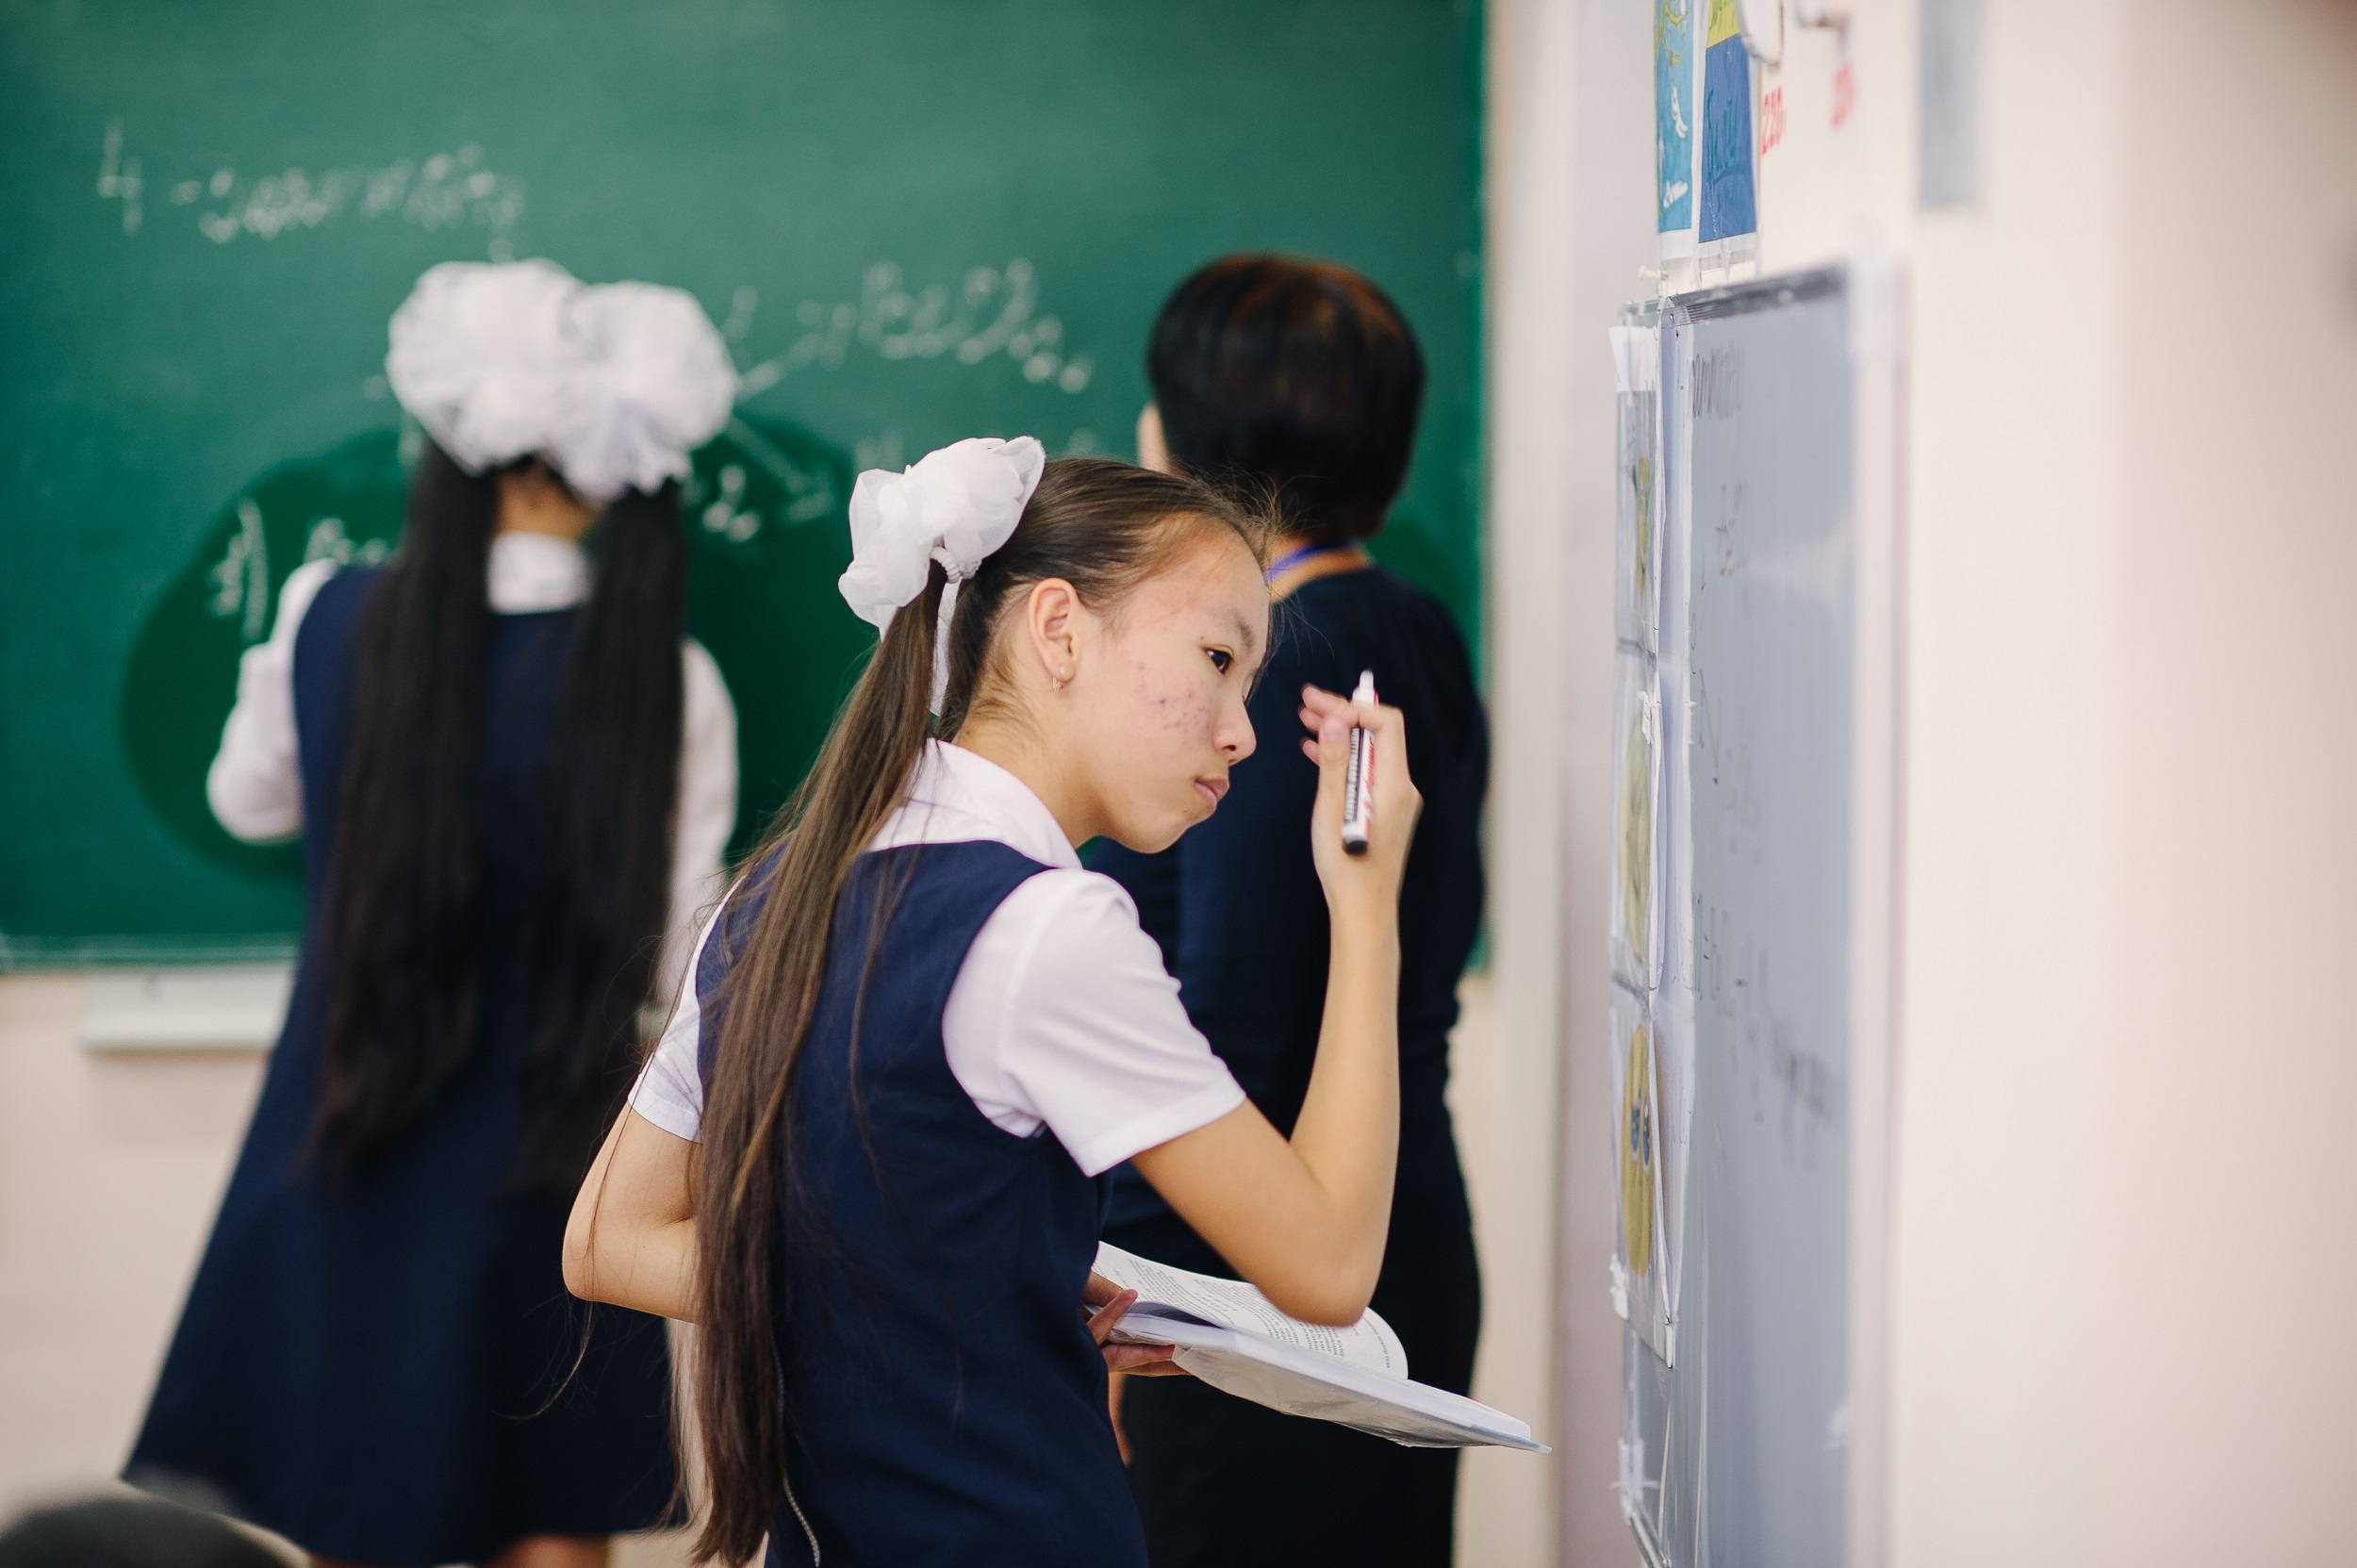 School girl in a classroom holds a marker pen as she stands looking at a classroom whiteboard